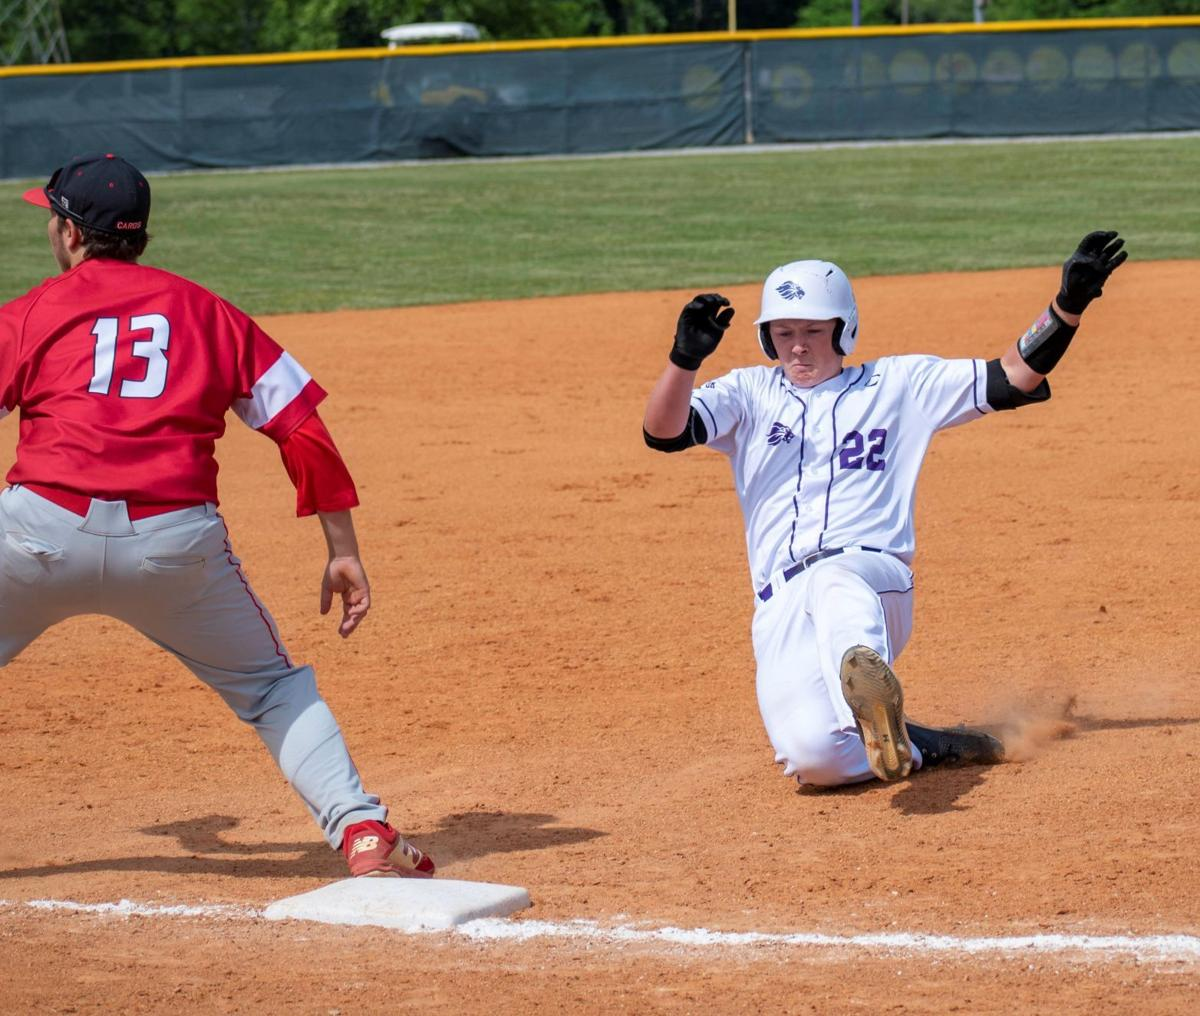 Brody Williams slides into 3rd hitting a triple against Livingston